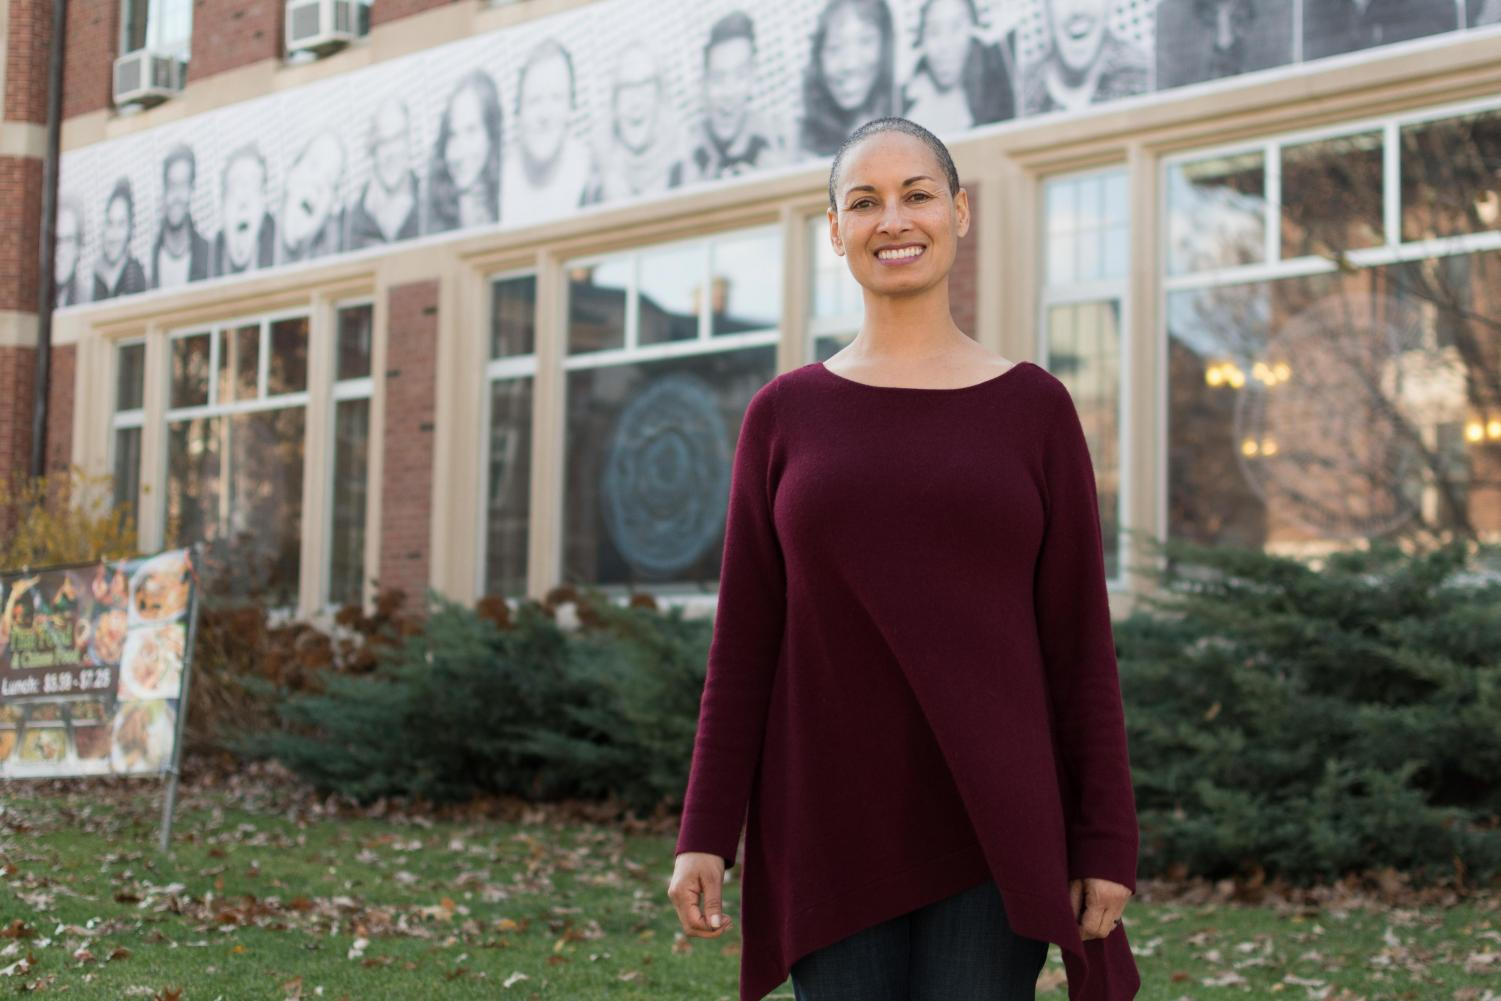 Rebecca Ginsburg works with the Education Justice Project located at the YMCA. Here, she poses in front of the University YMCA.